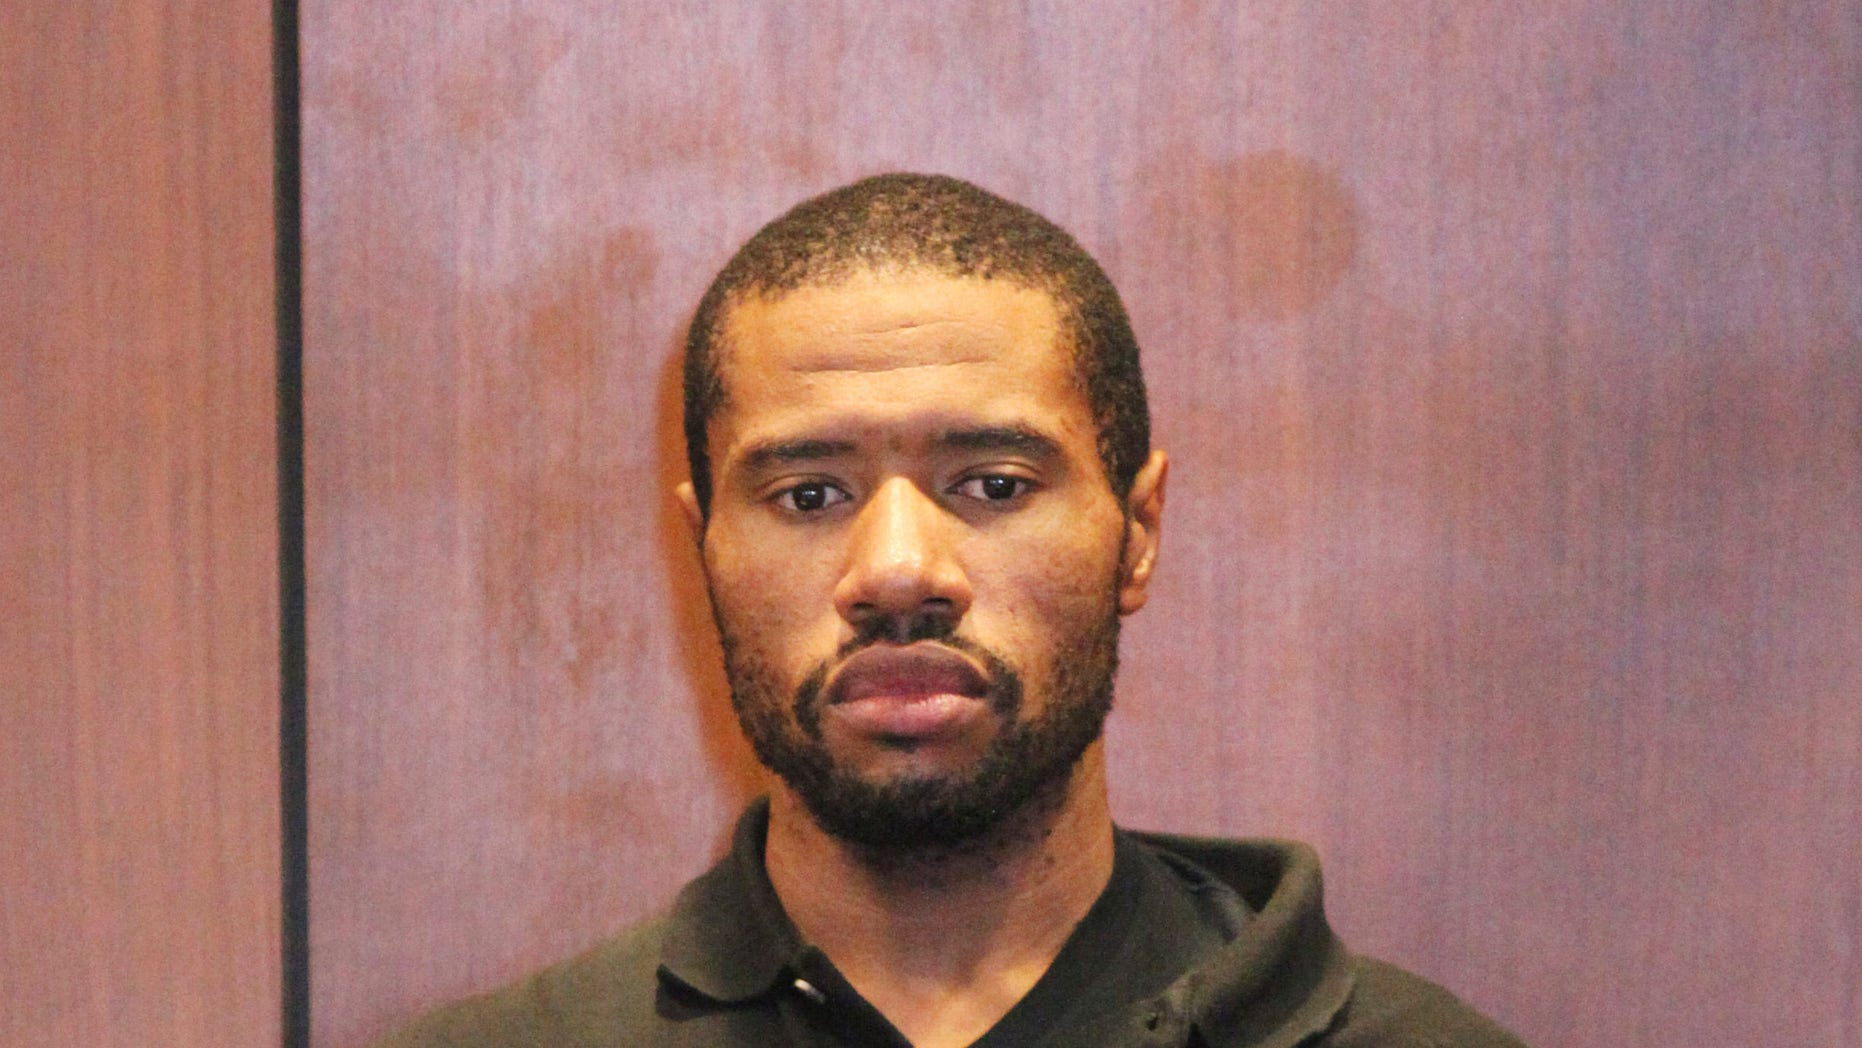 Ali Muhammad Brown appears in court in Essex County, N.J. in August 2014.